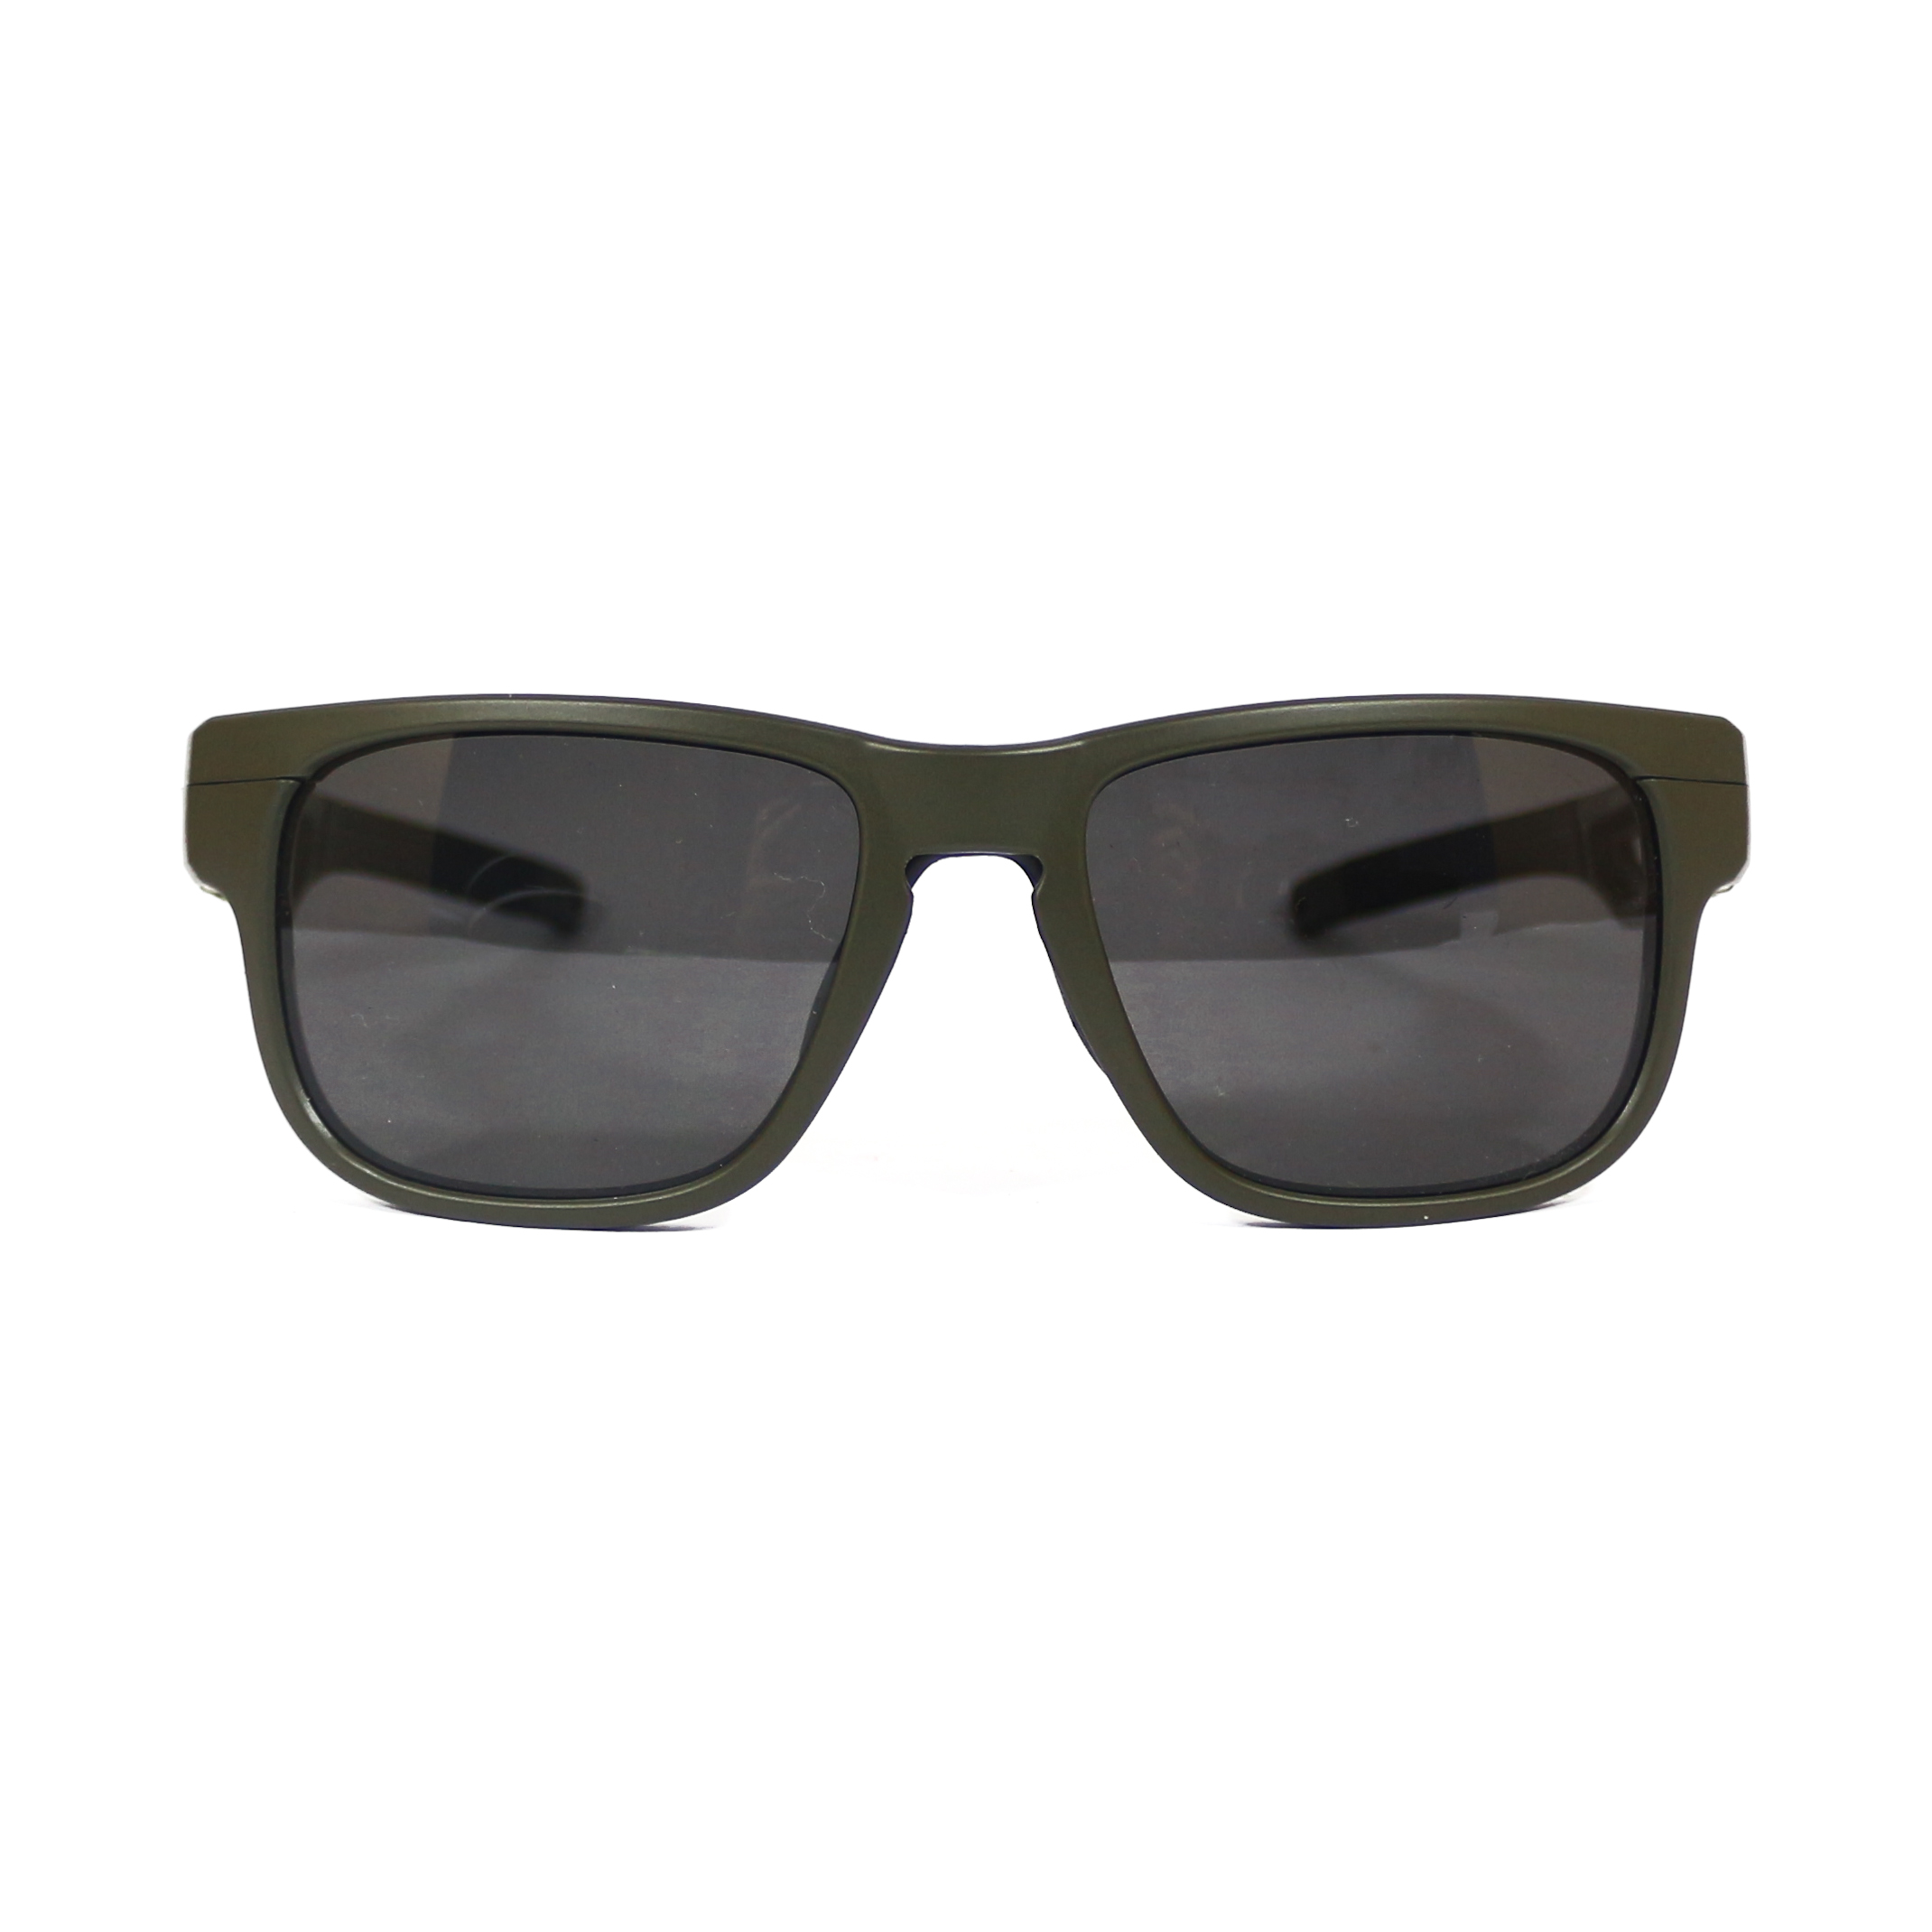 Zeal Polarised Fishing Sunglasses Bunny Walk BW-0182F Matt Khaki Bge (0822)